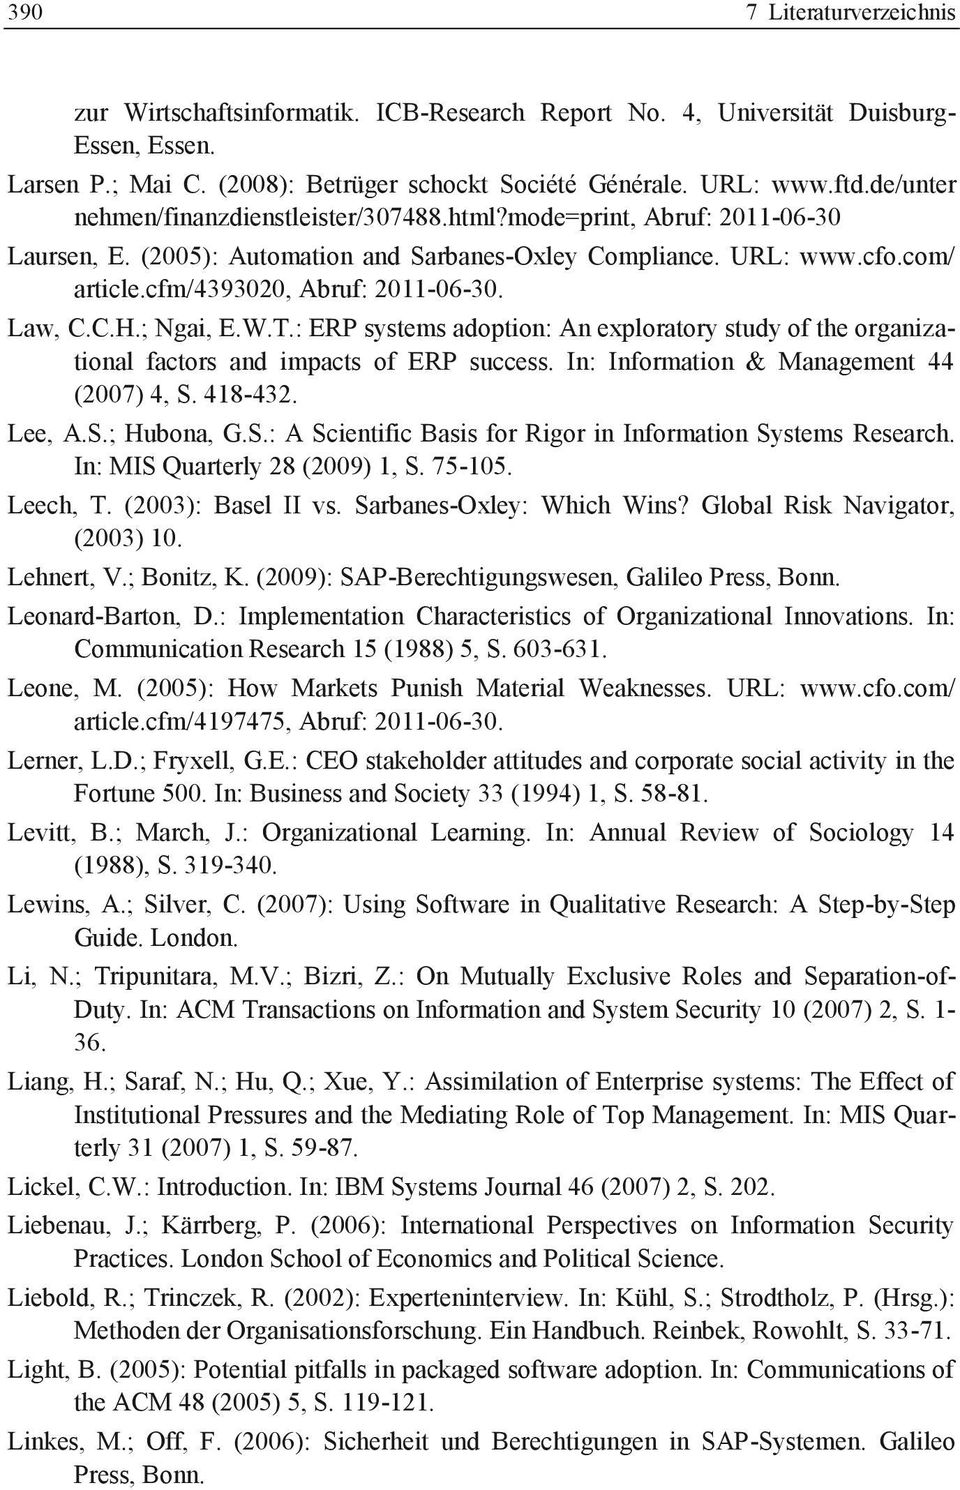 Law, C.C.H.; Ngai, E.W.T.: ERP systems adoption: An exploratory study of the organizational factors and impacts of ERP success. In: Information & Management 44 (2007) 4, S. 418-432. Lee, A.S.; Hubona, G.